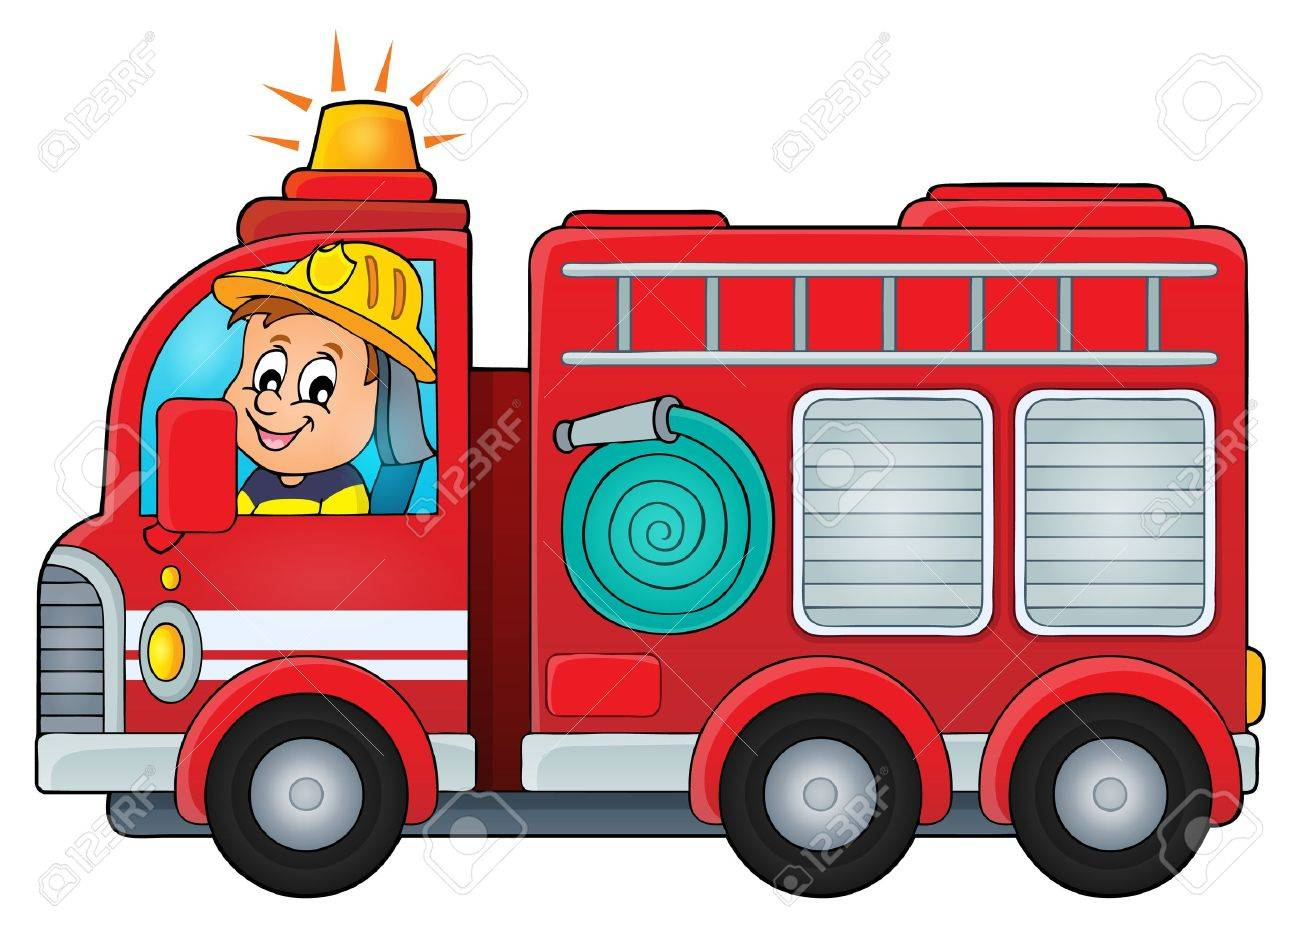 Clipart Of Fire Truck.